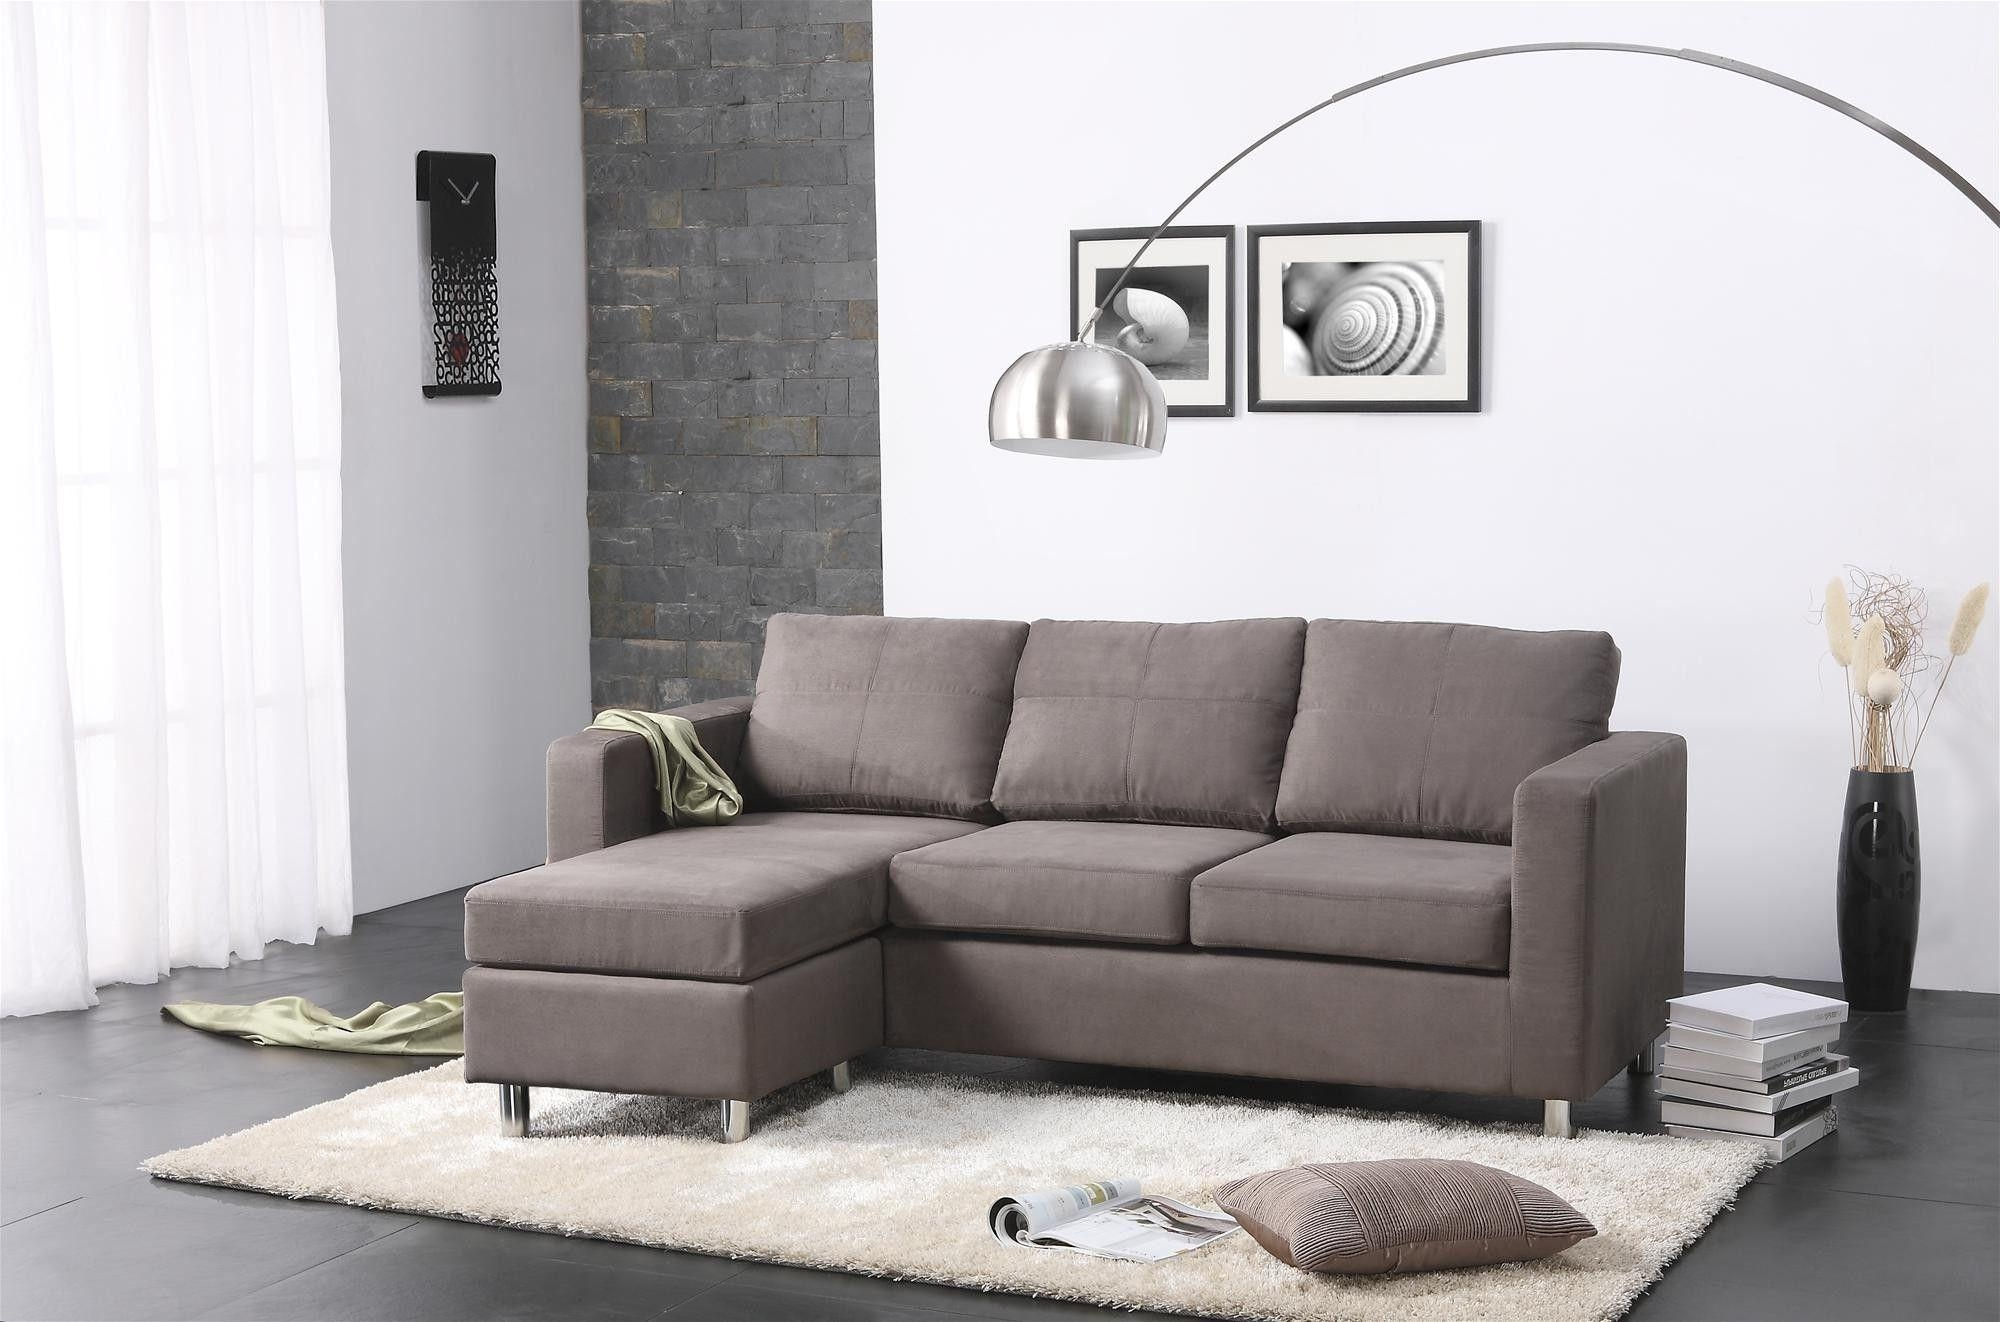 Loveseats For Small Spaces 20 Inspirations Small Sectional Sofas For Small Spaces